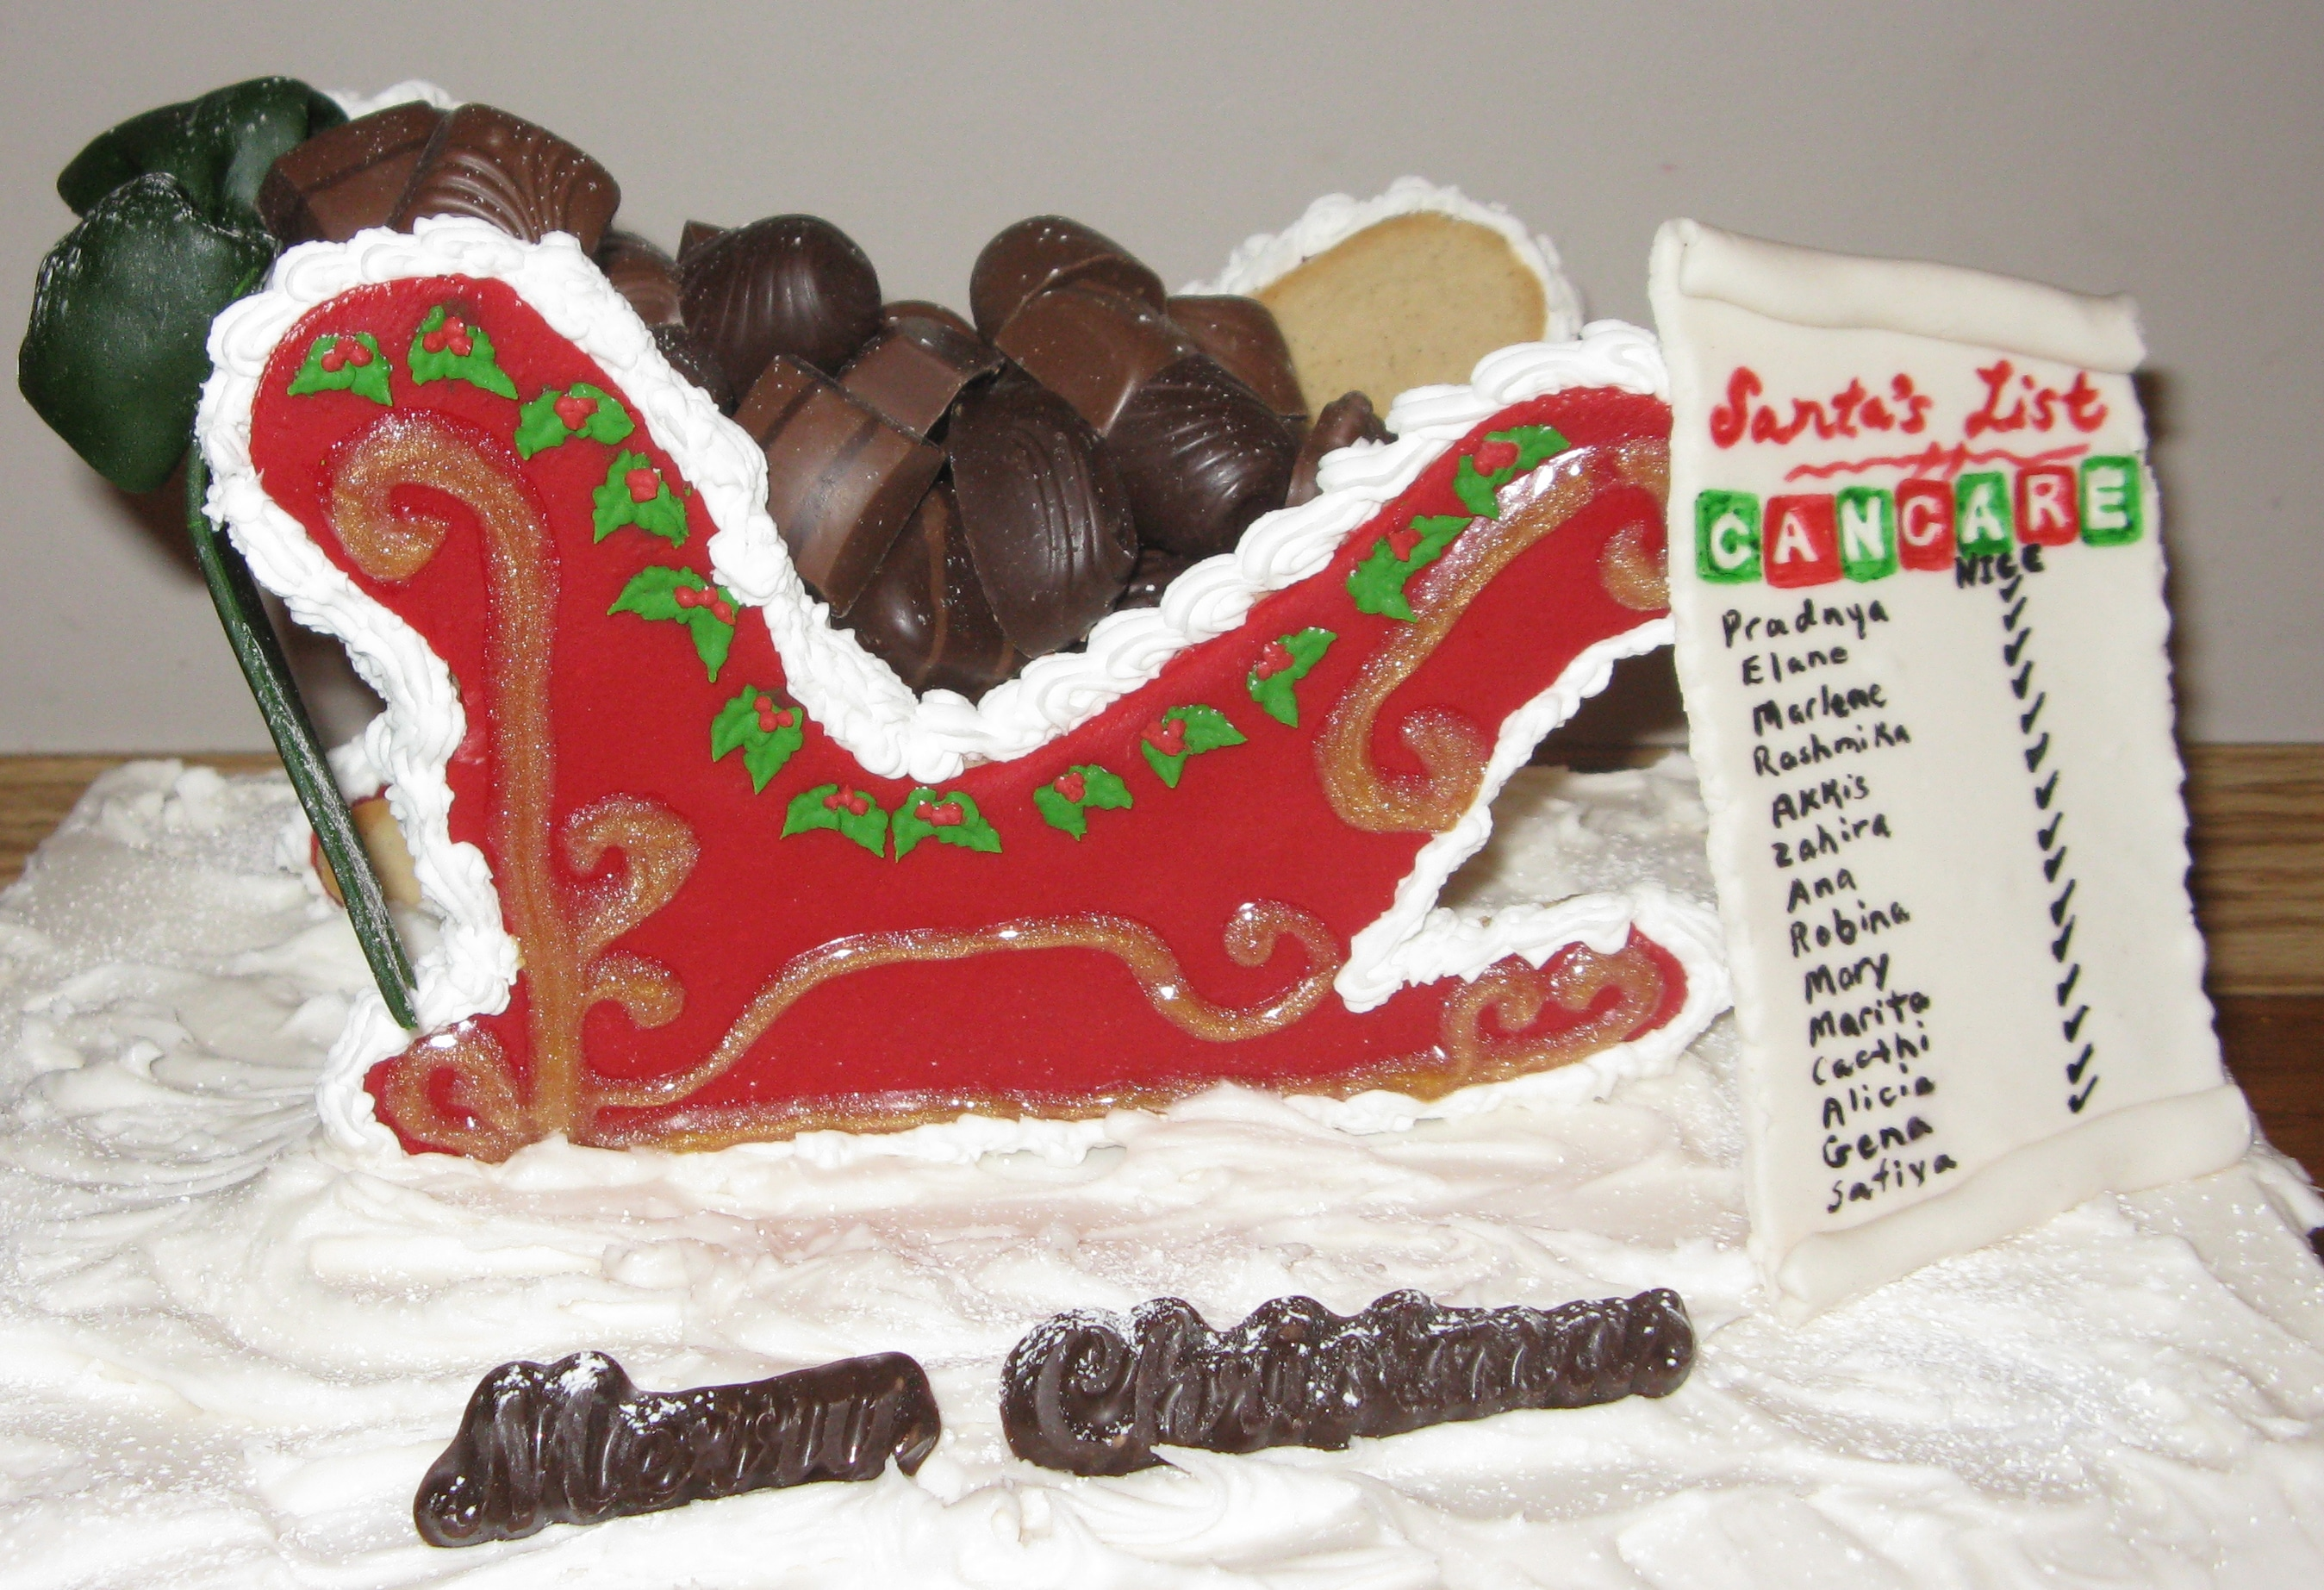 gingerbread sled filled with chocolate